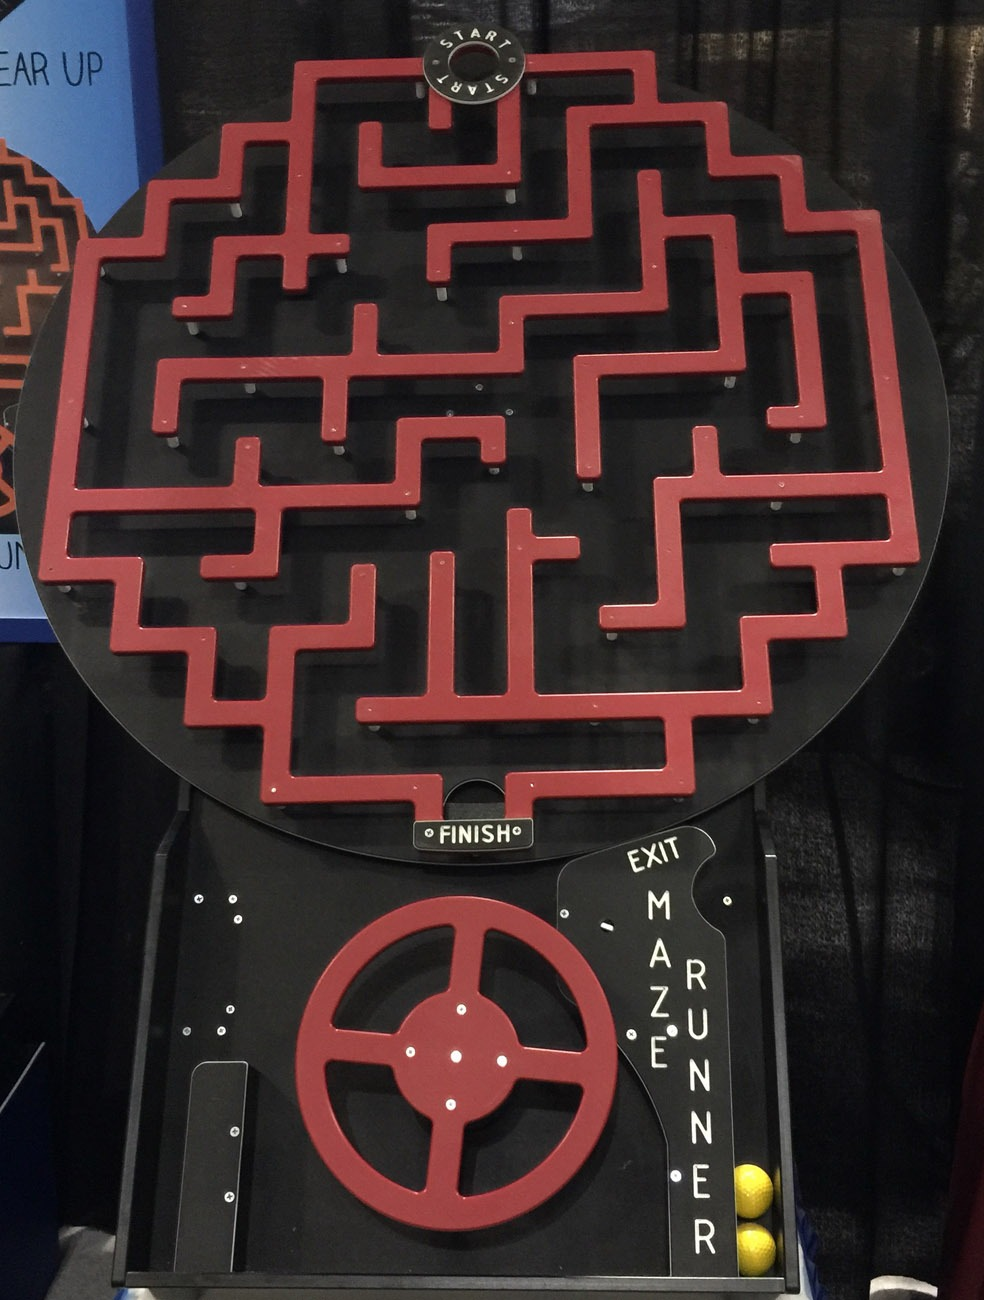 The Crazy Maze Game